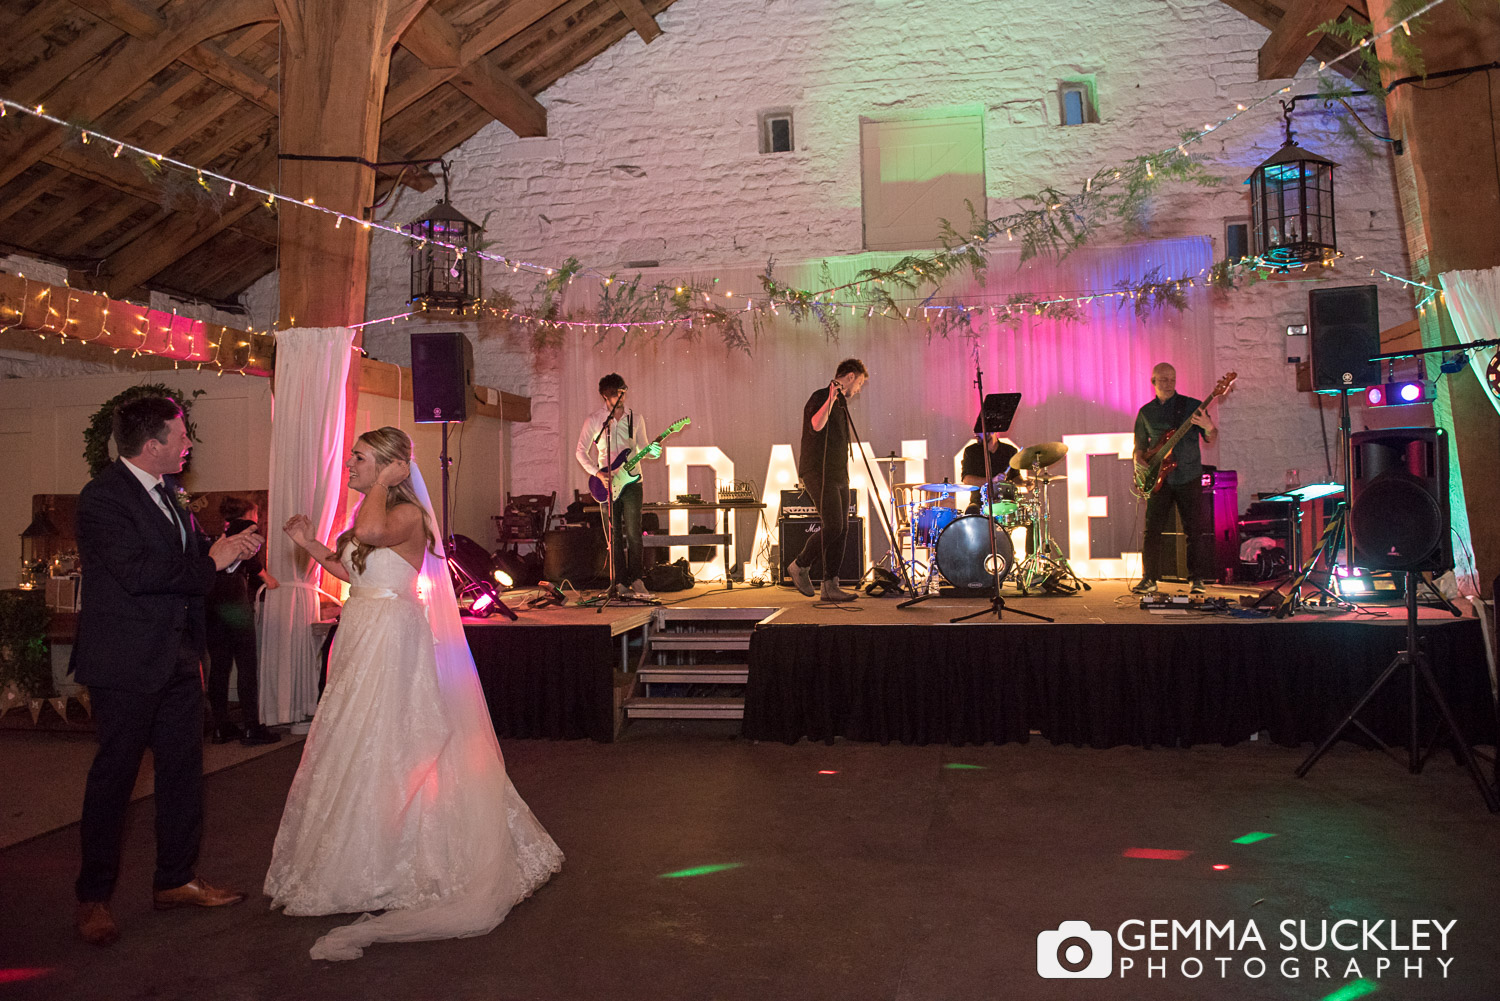 kings-of-the-dance-floor-©gemmasuckleyphotography.JPG